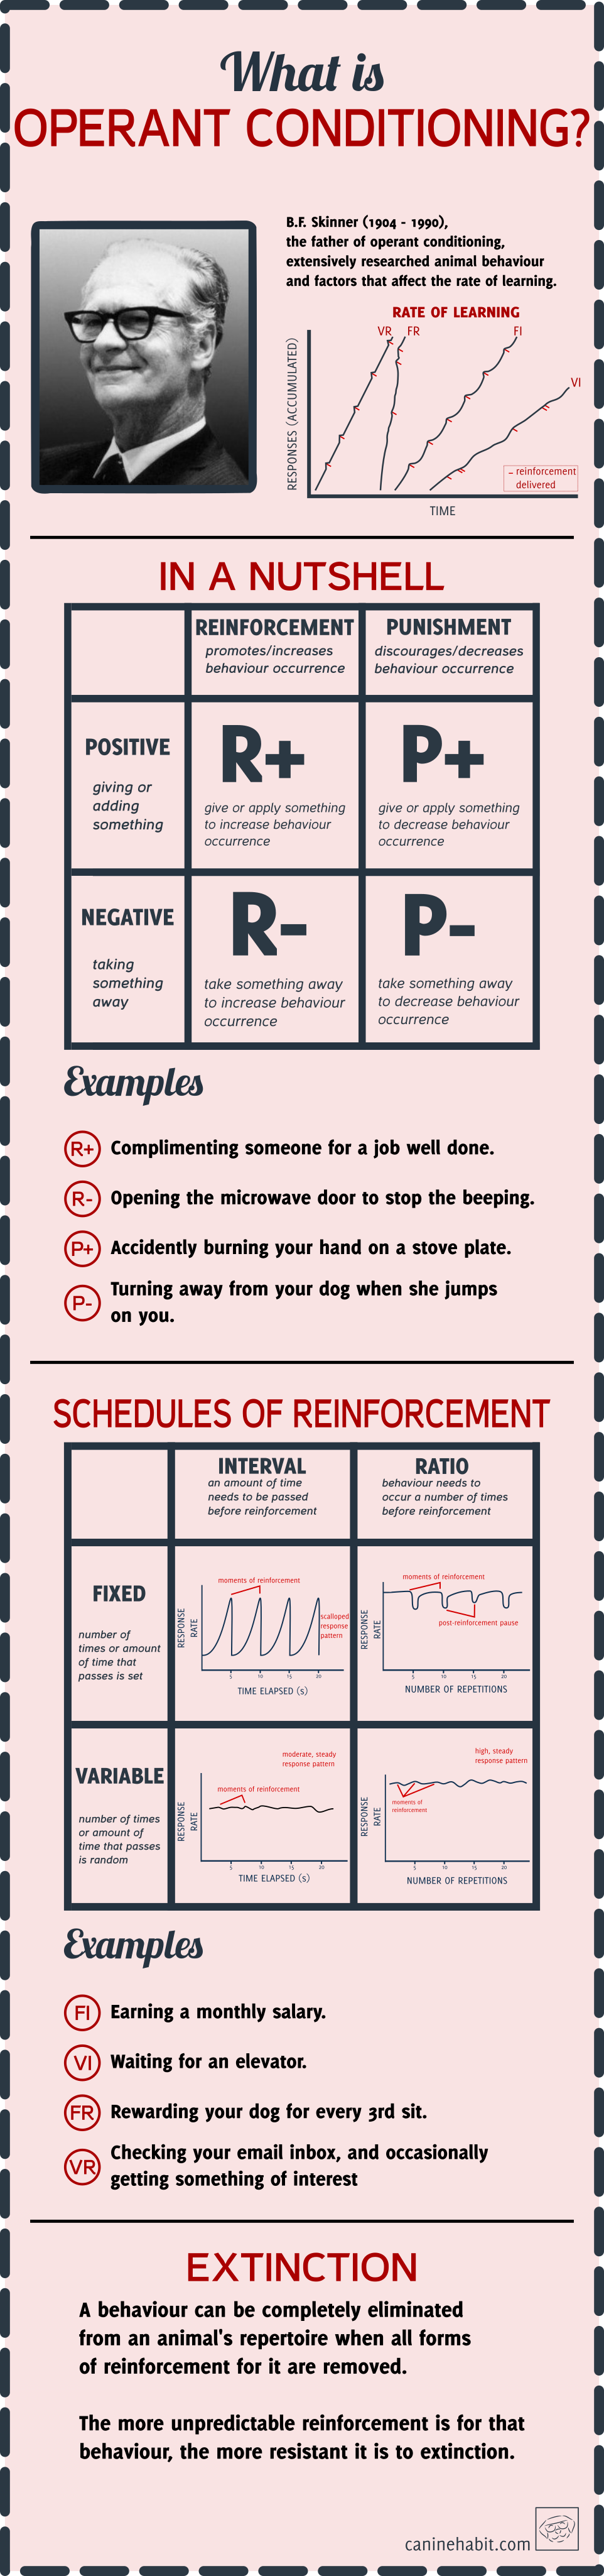 OPERANT CONDITIONING INFOGRAPHIC